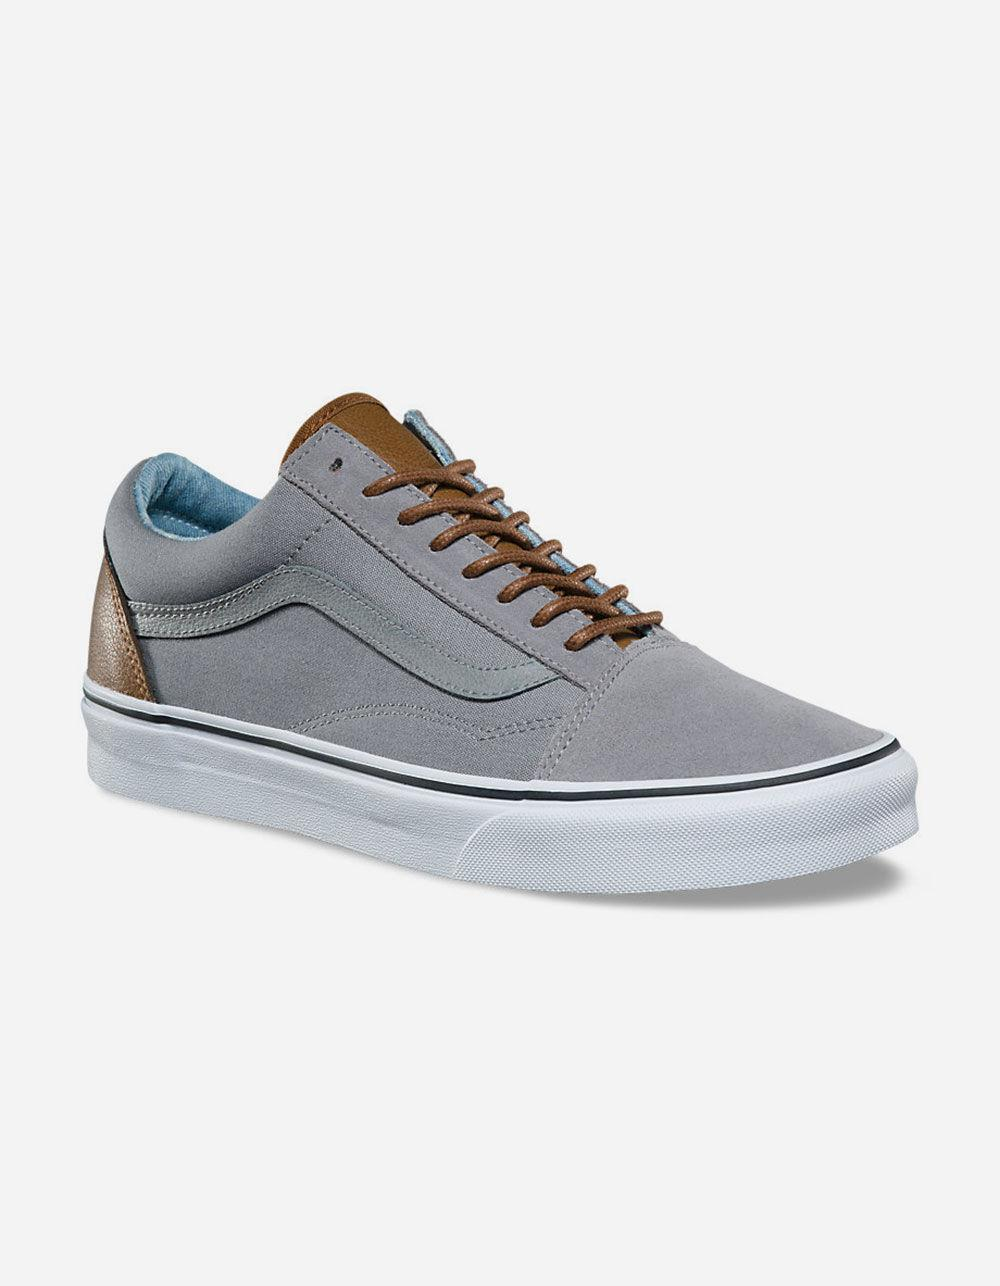 Lyst - Vans C l Old Skool Frost Grey   Acid Denim Mens Shoes in Gray ... 0f2de895c